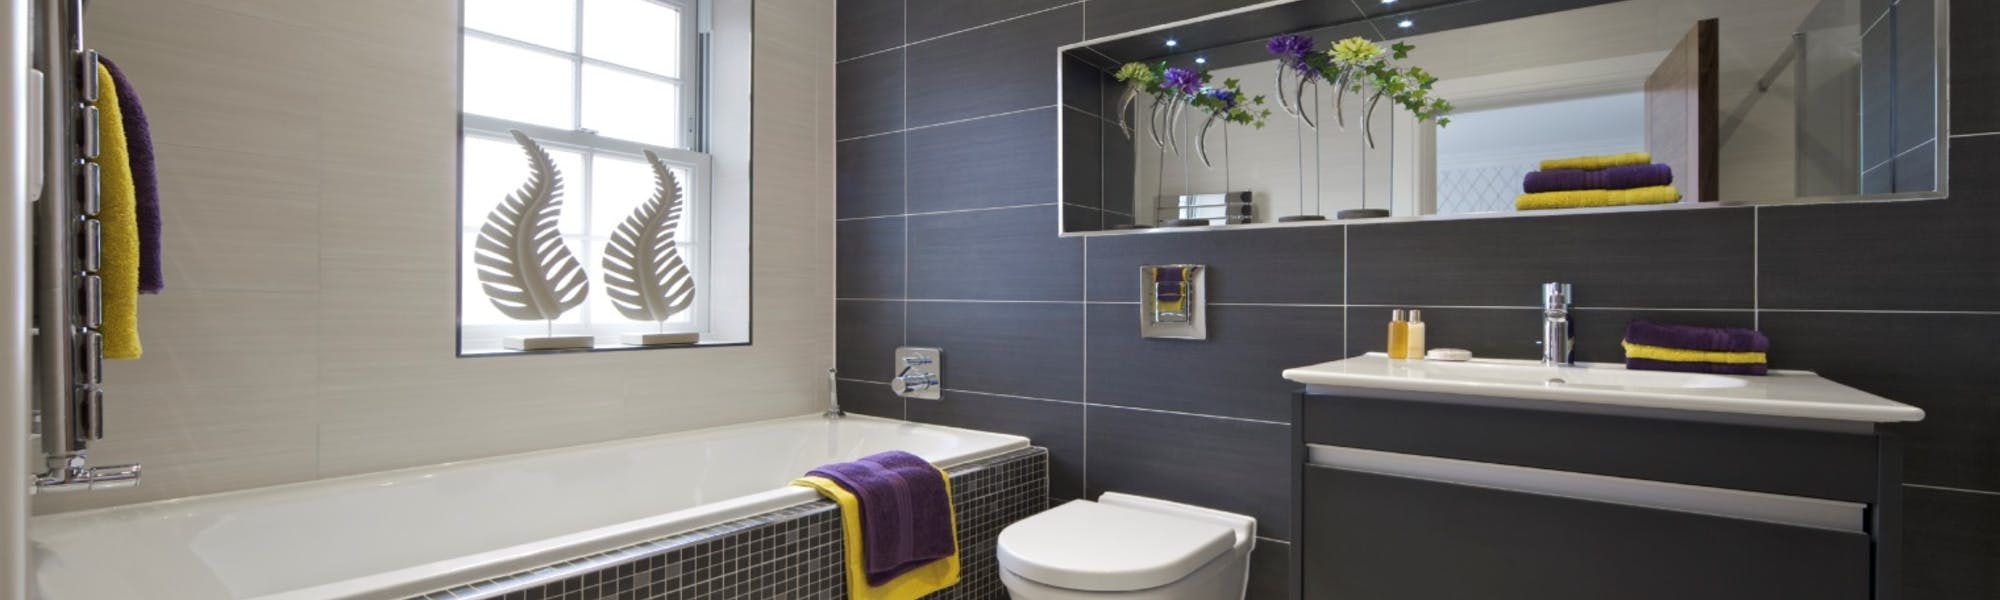 We offer a selection of bathroom storage options including modular units, bespoke niches, fitted furniture and wall mounted designs.